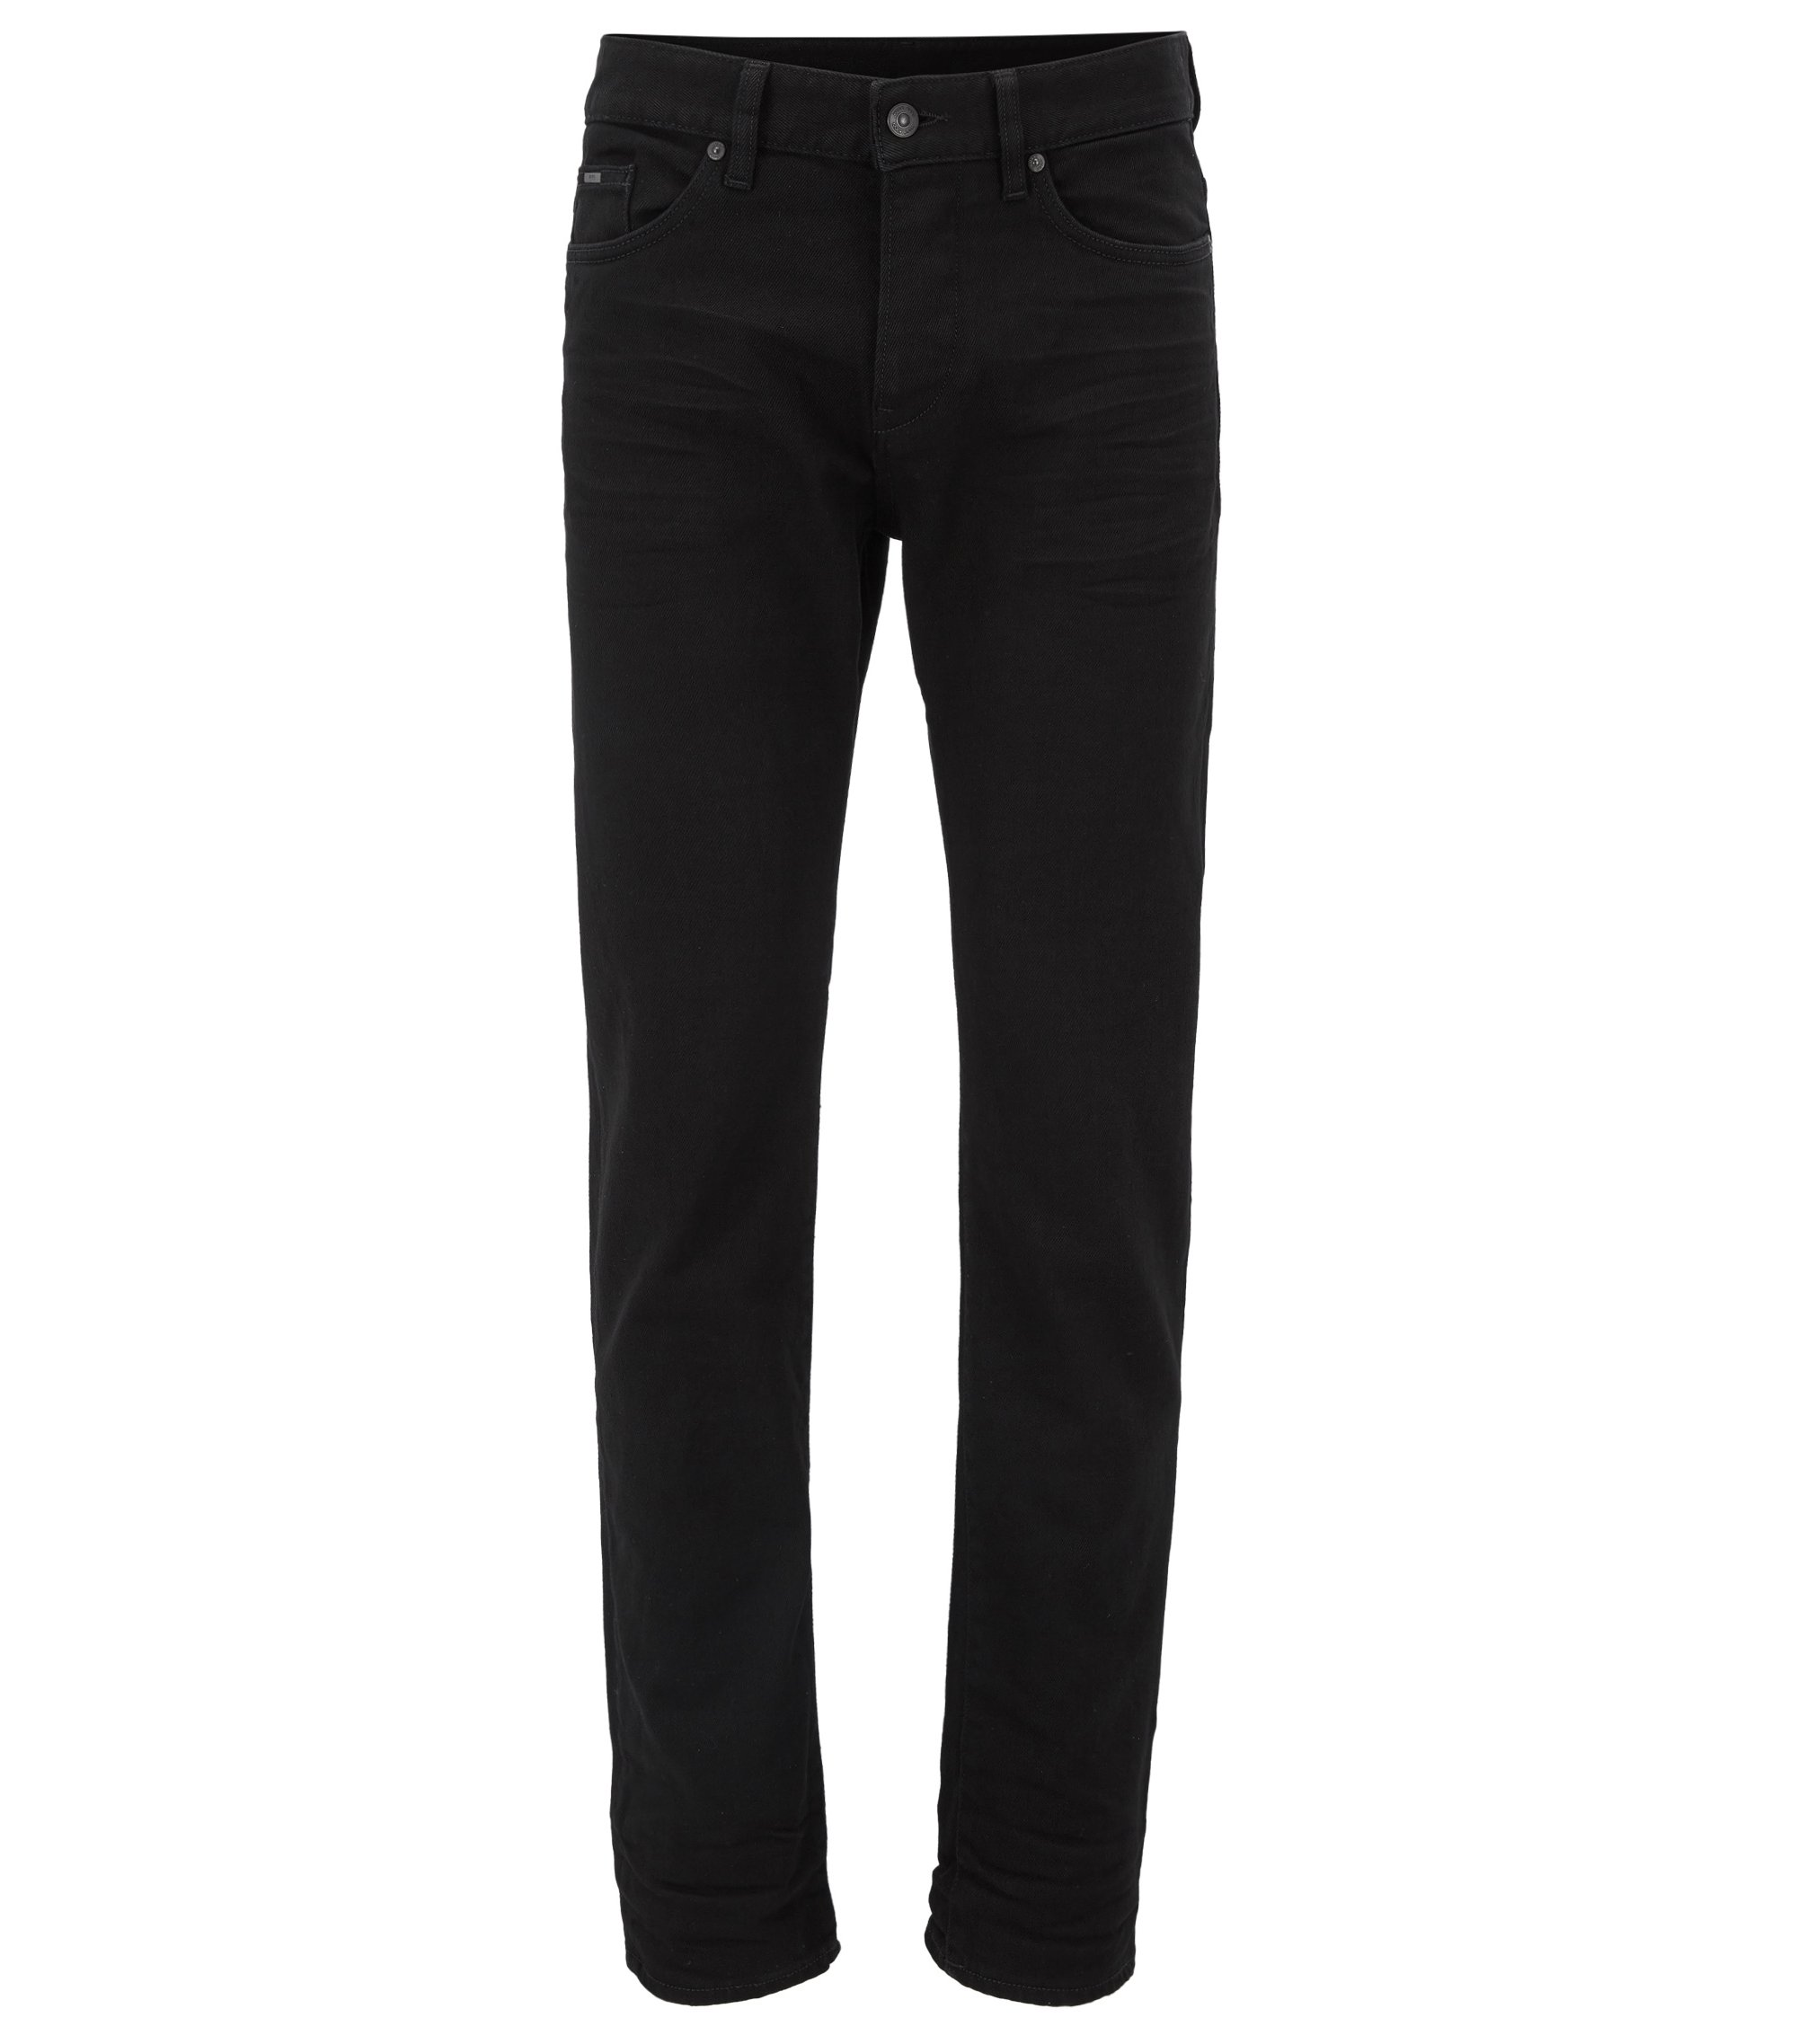 Stretch Cotton Pant, Slim Fit | Delaware BE, Black